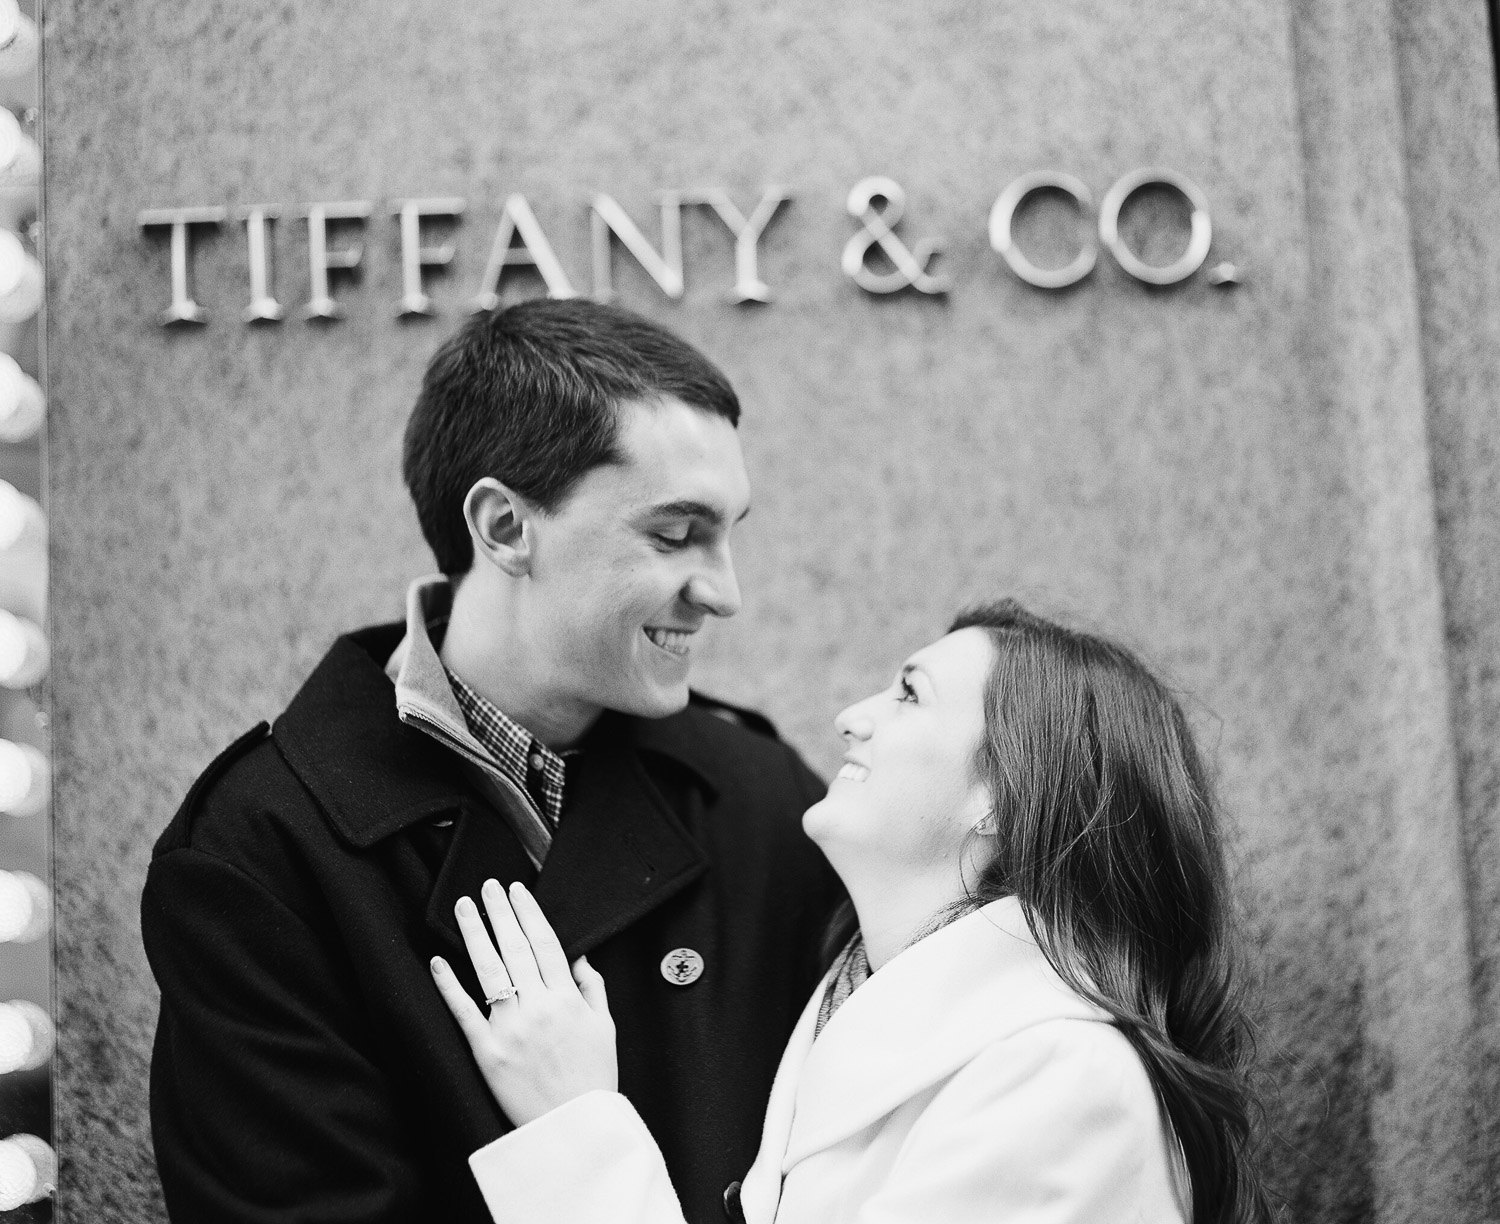 black and white photo of couple laughing in front of tiffany's